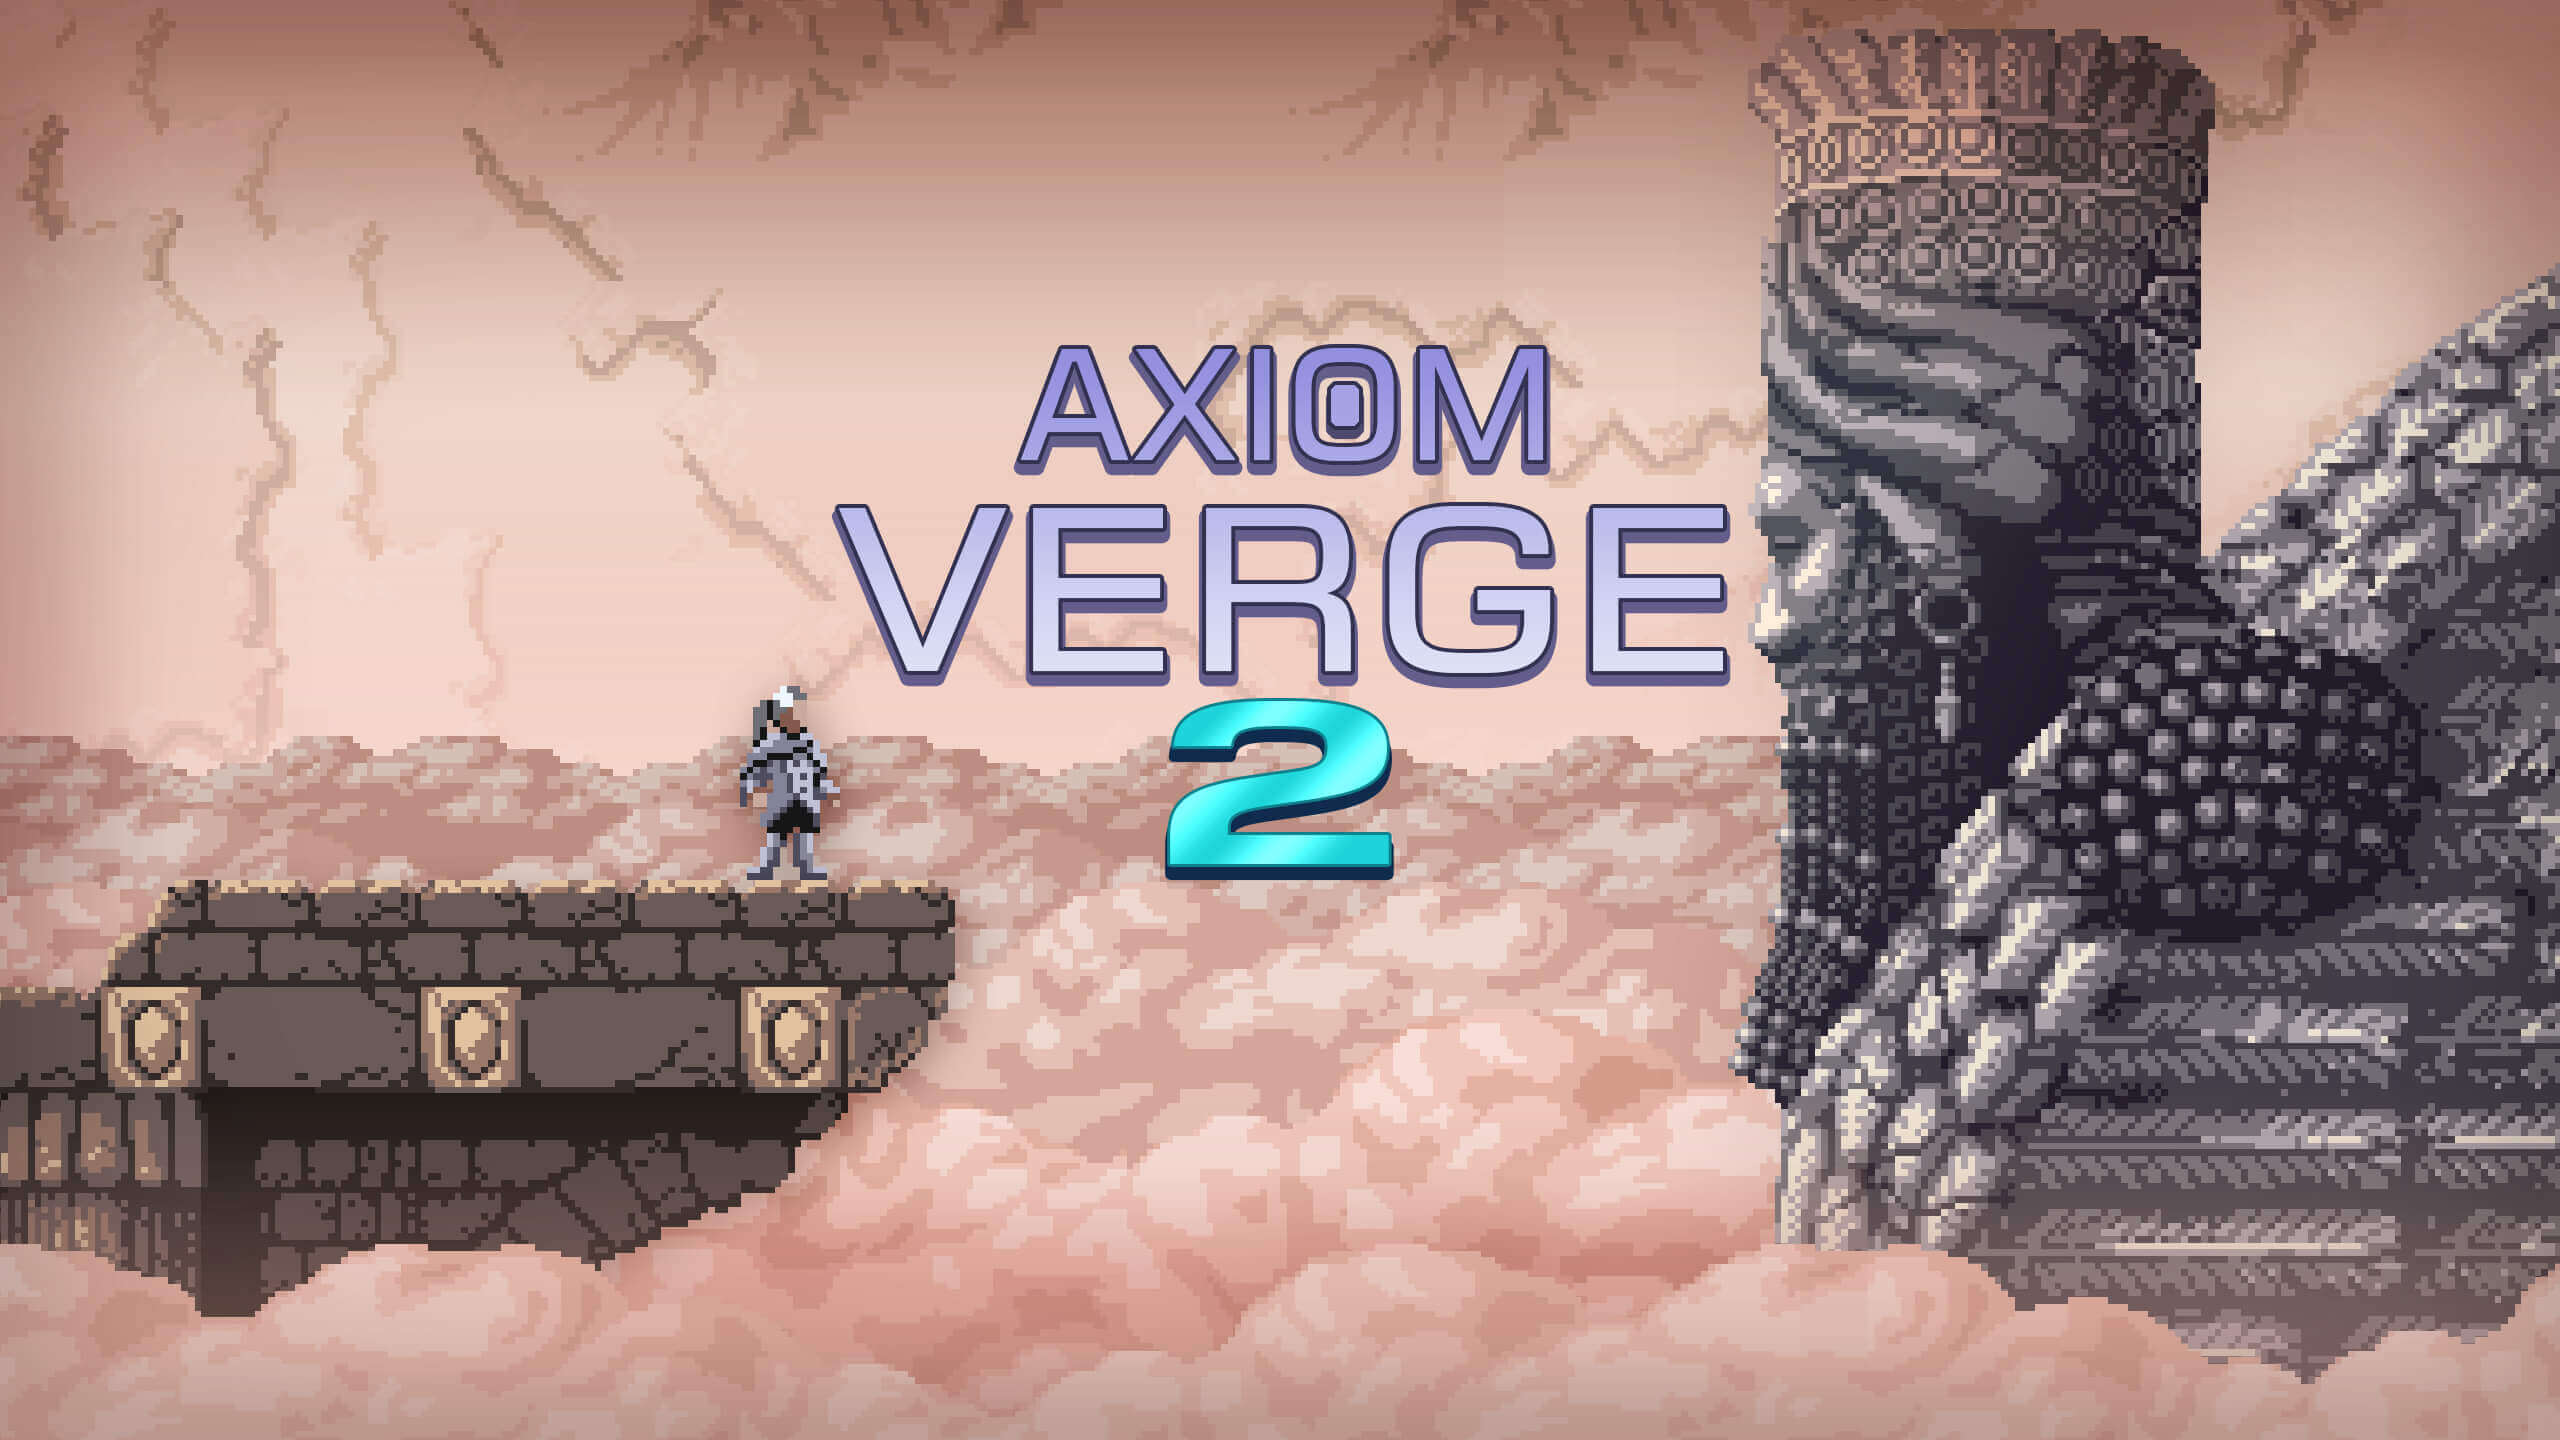 Axiom Verge 2 S1